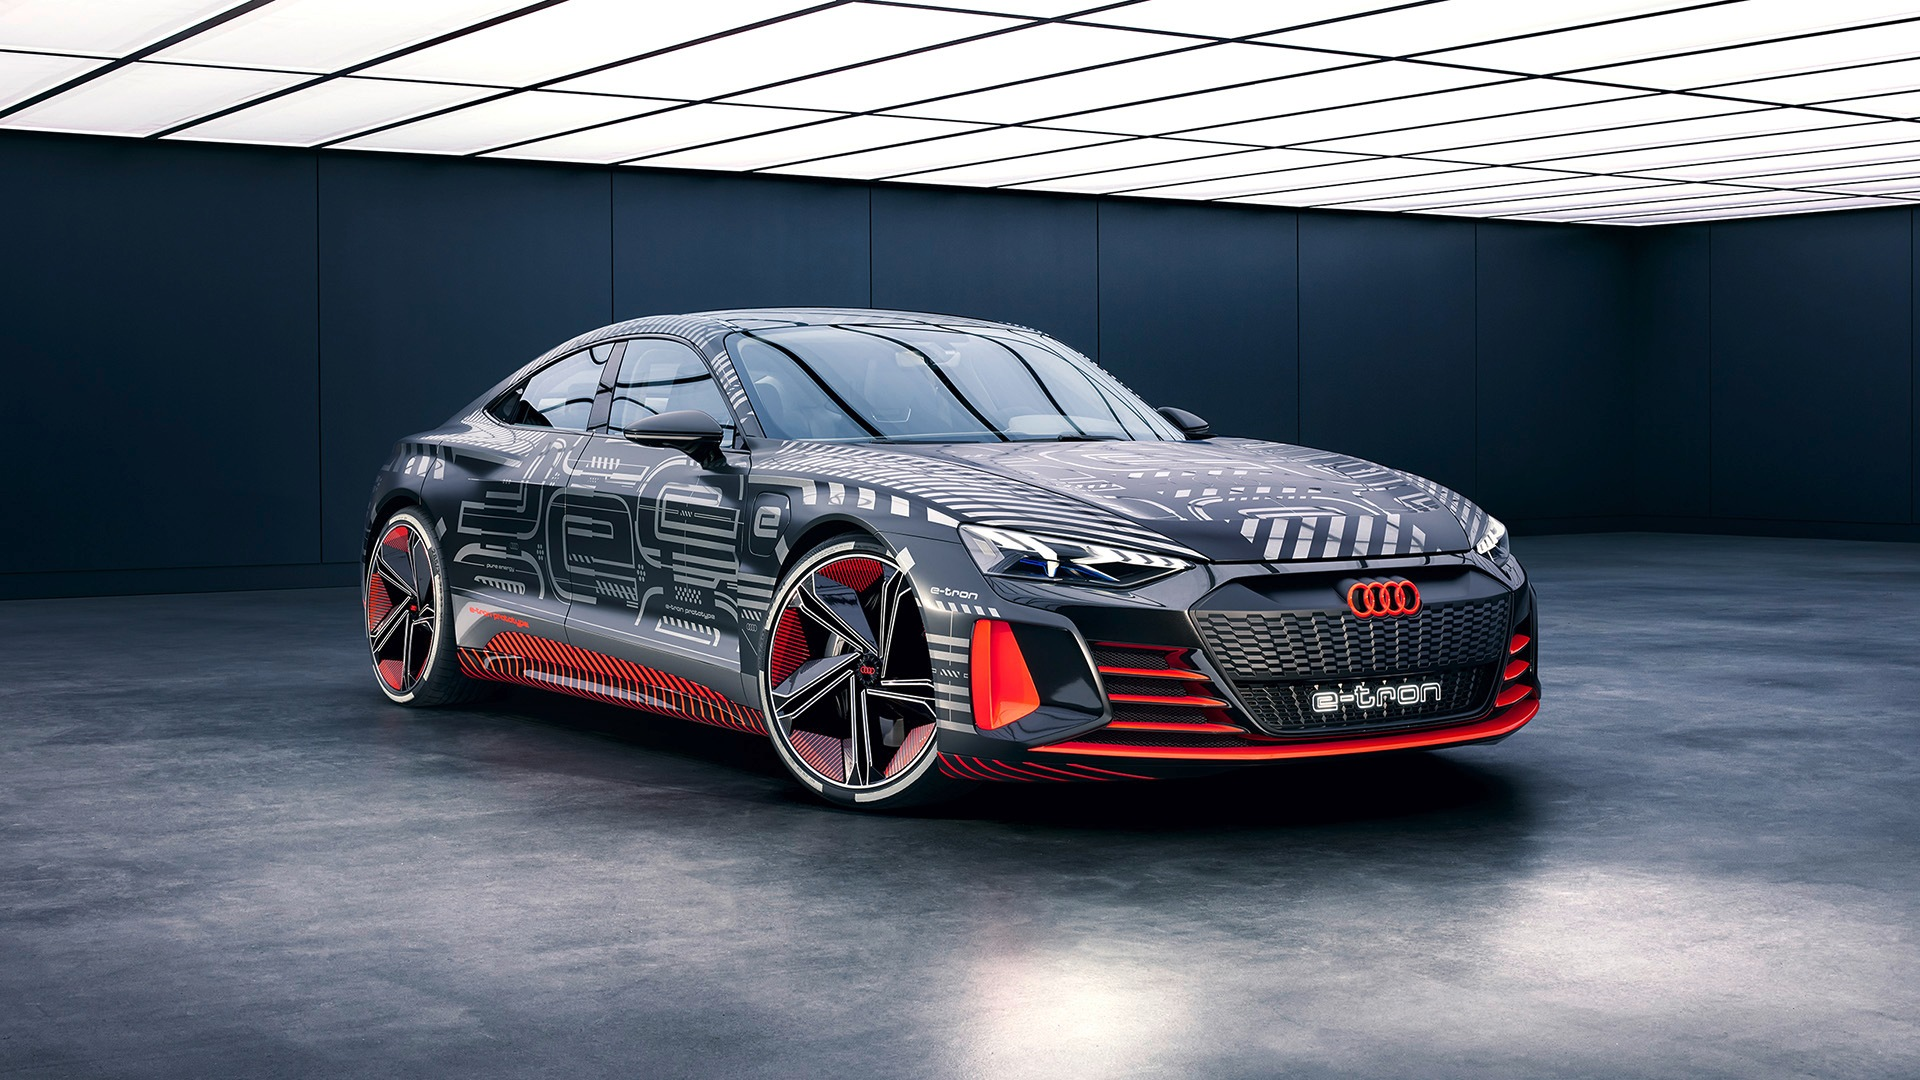 Silhouette of the Audi e-tron GT concept